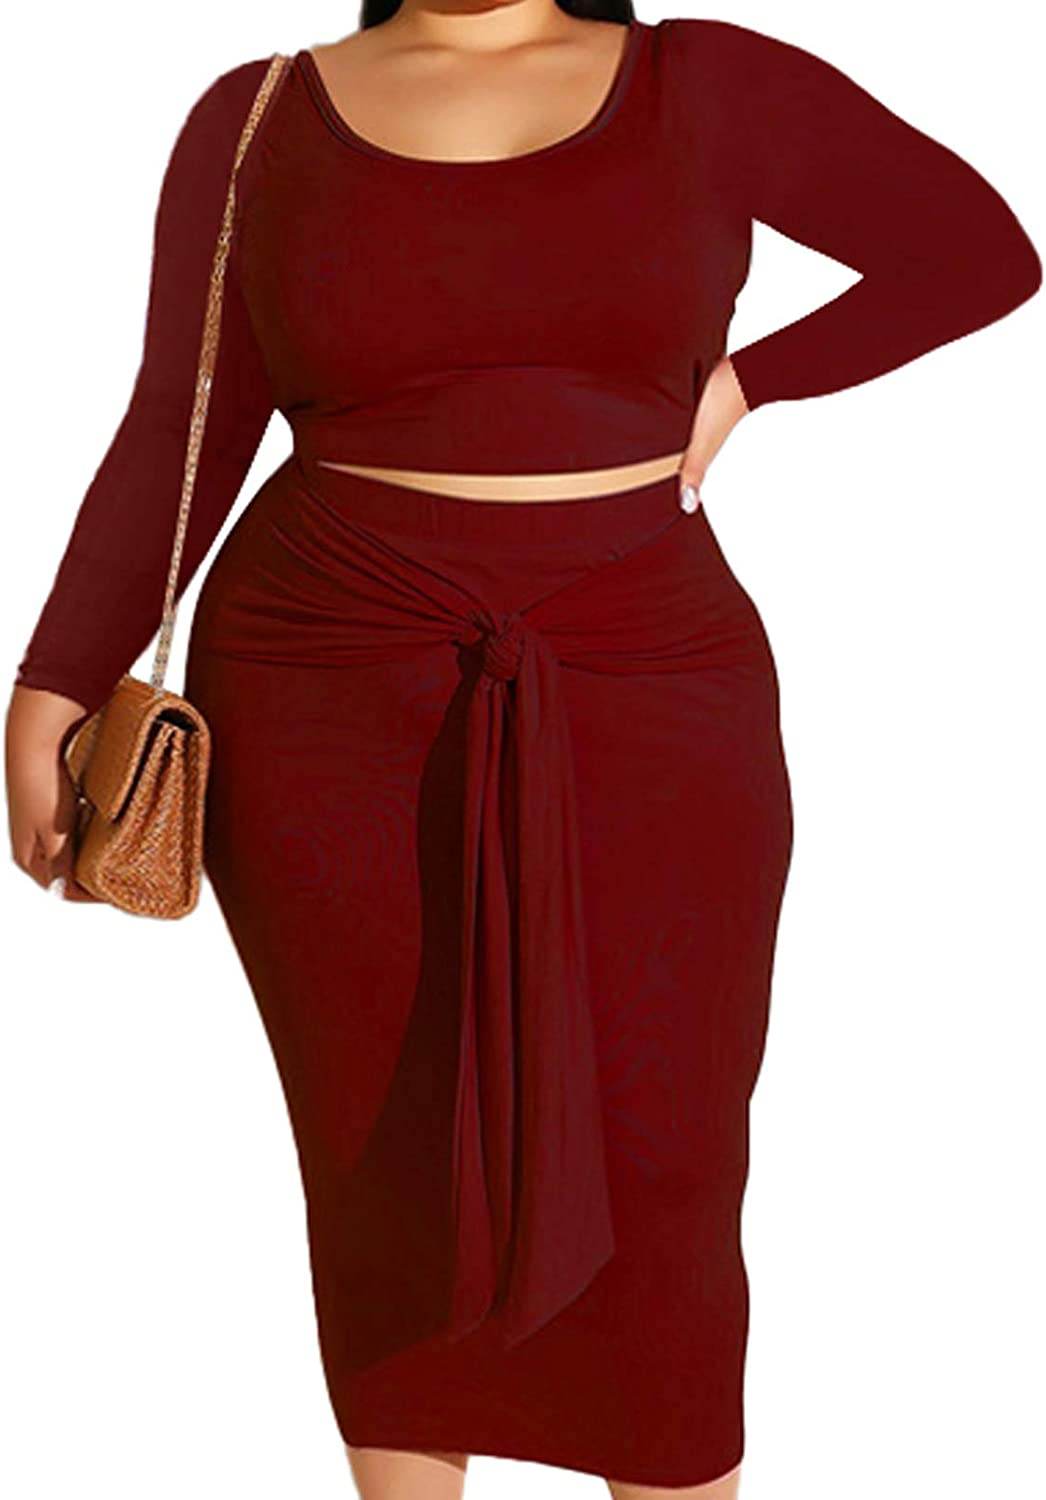 Red Two Piece Outfits for Women Plus Size Skirt Sets Bodycon Crop Top Mid Long Skirt Burgundy 3X